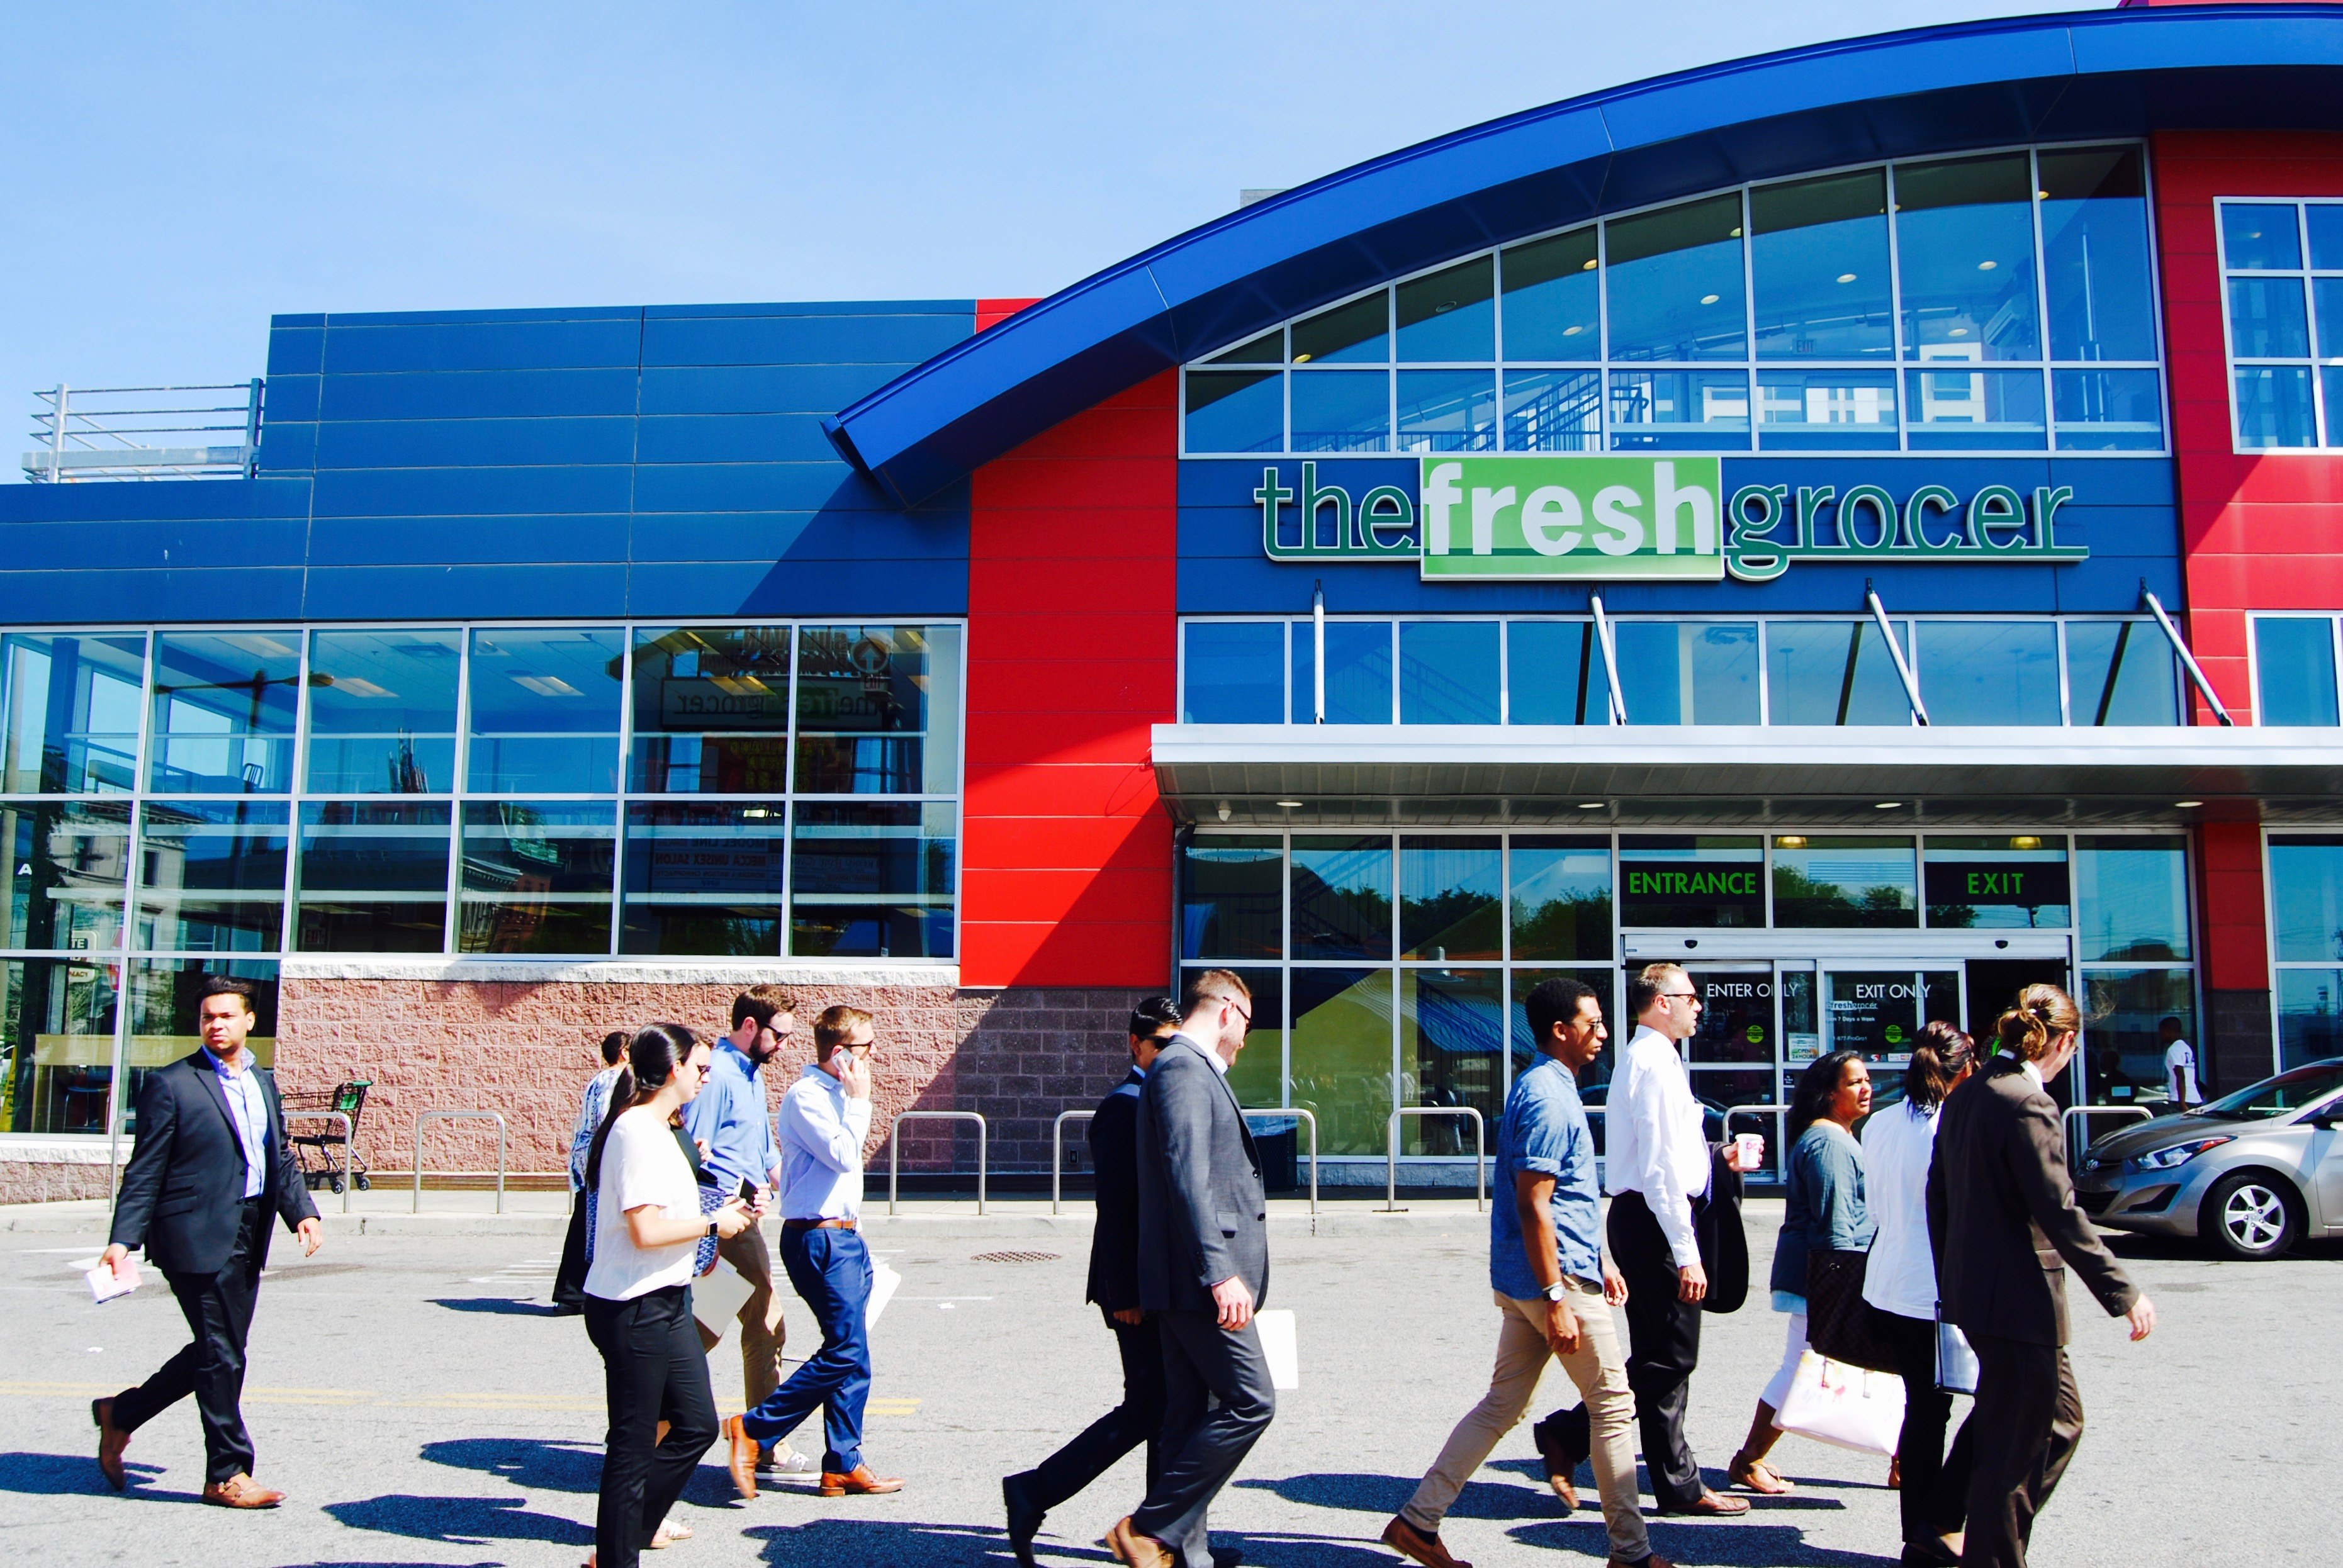 Students and faculty walking through parking lot in front of Fresh Grocer building